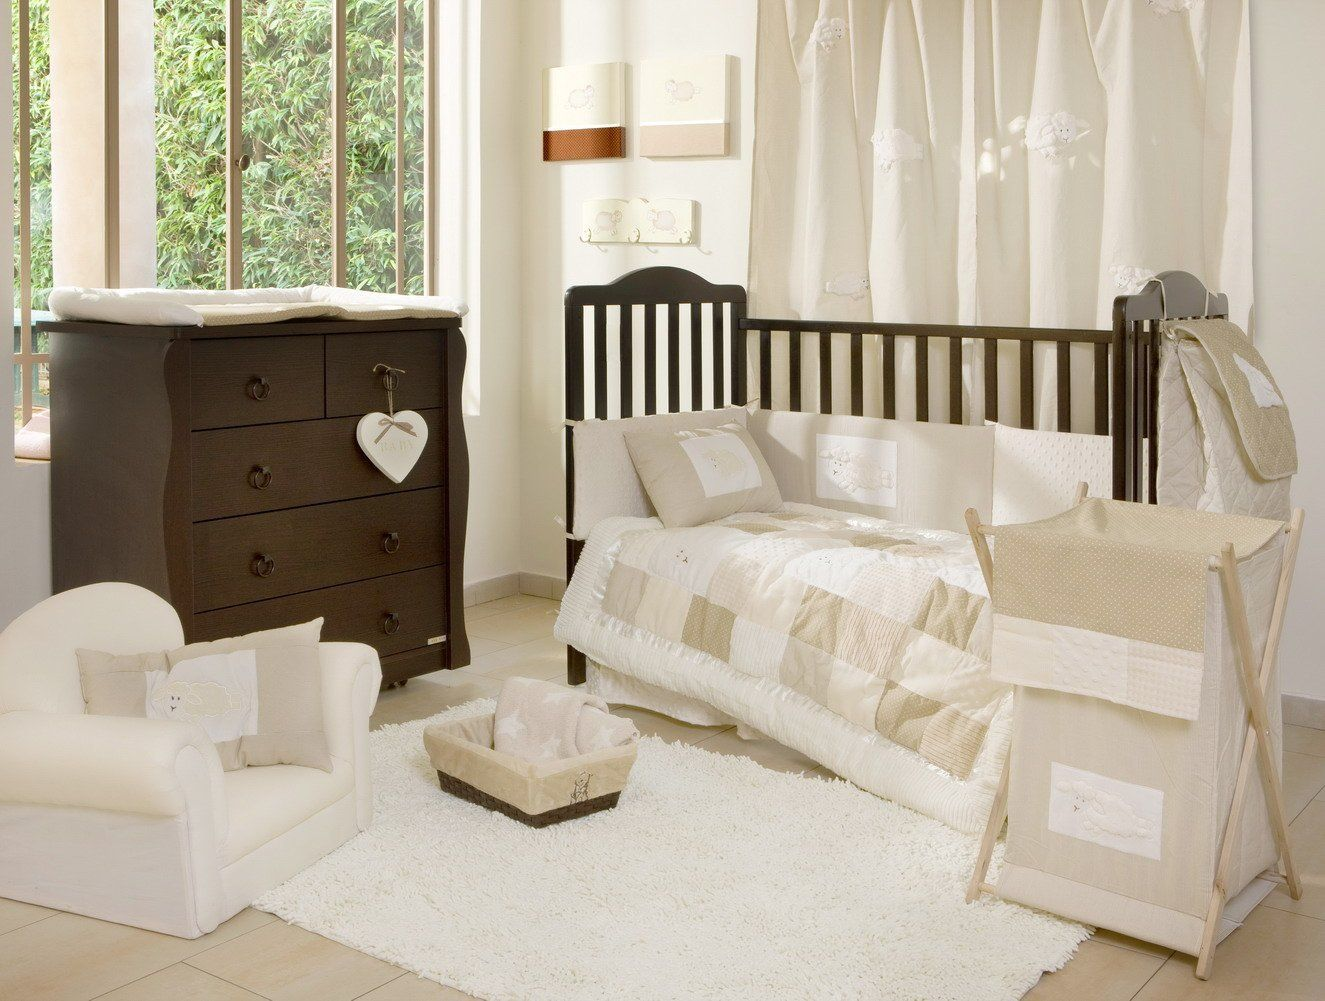 beige, cream and white bedroom decorating ideas | cream decor and